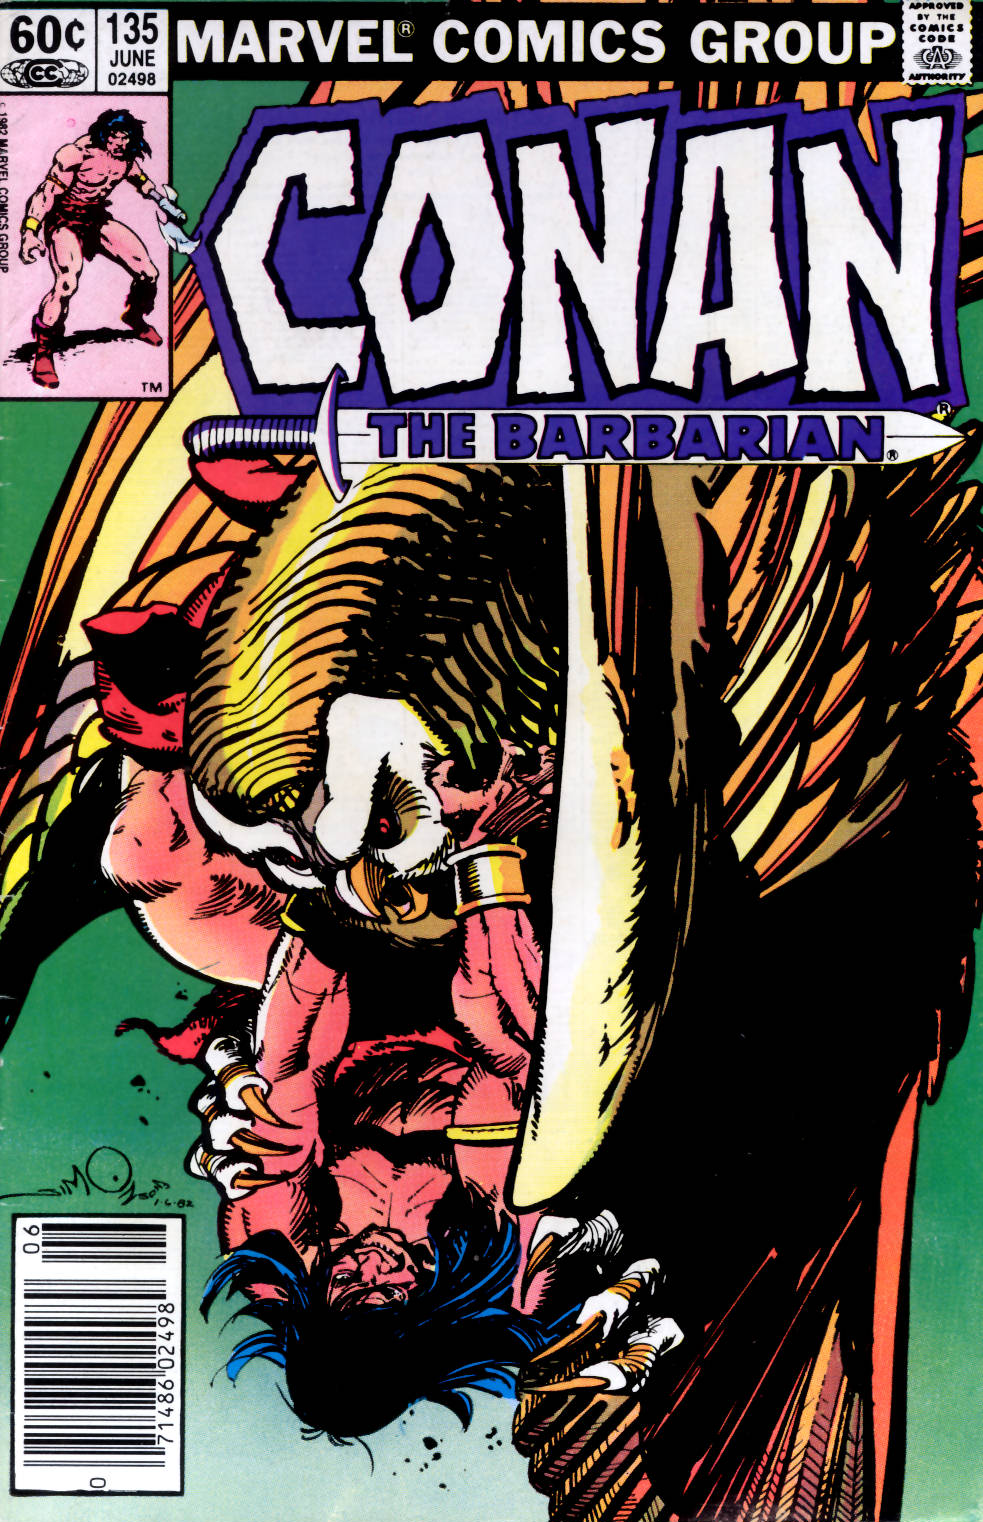 Conan the Barbarian (1970) Issue #135 #147 - English 1